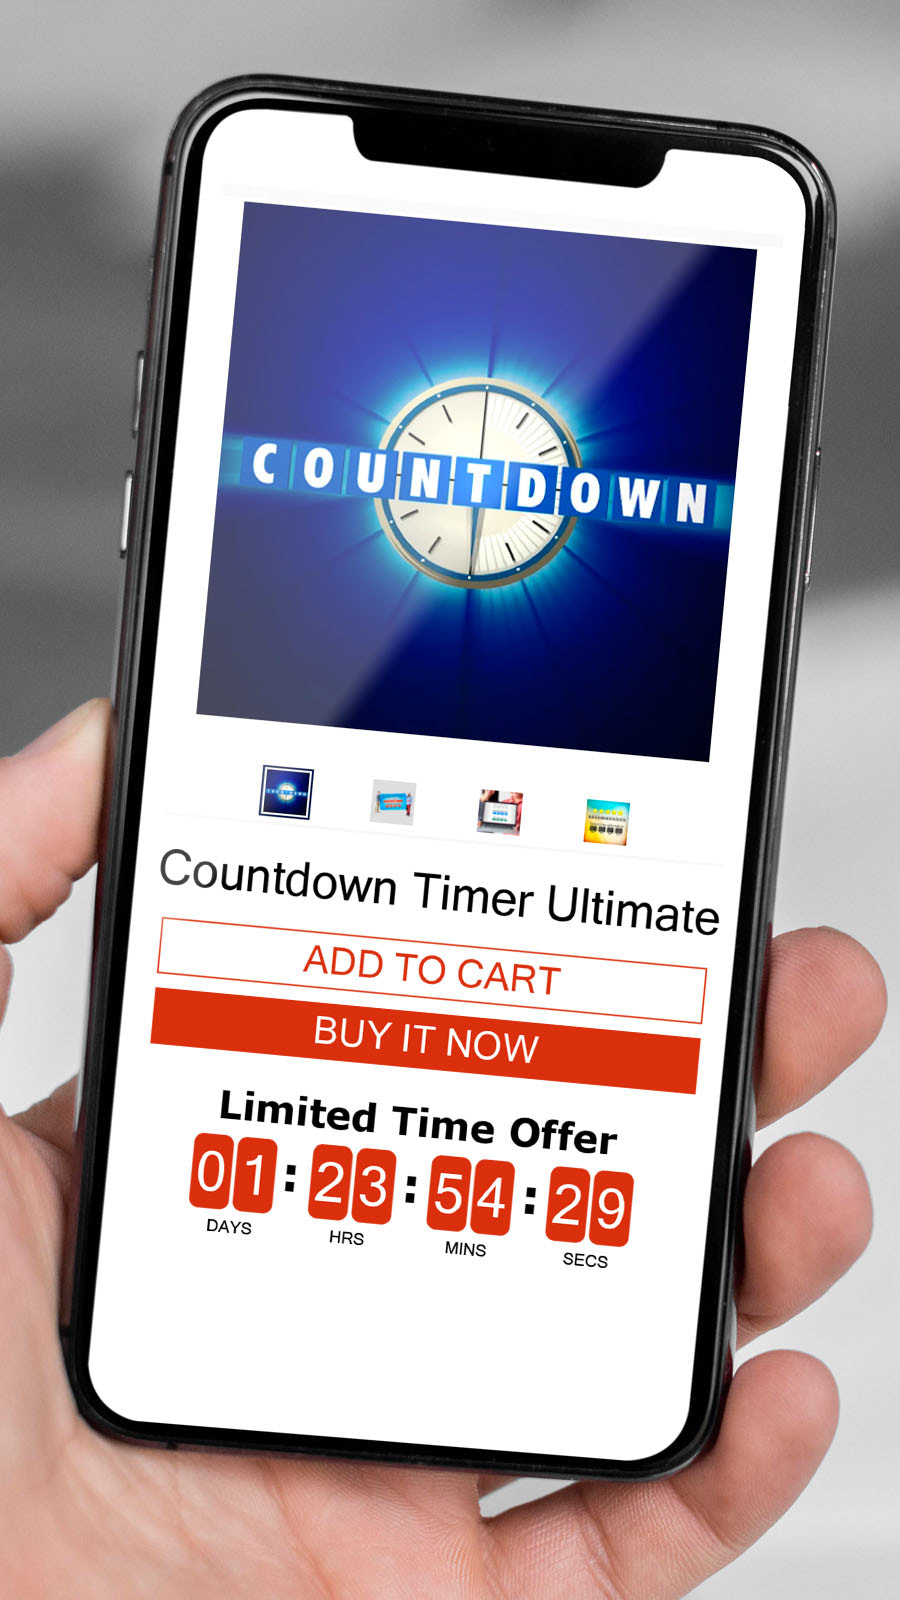 Countdown Timer Ultimate KILATECH Mobile view of a product page